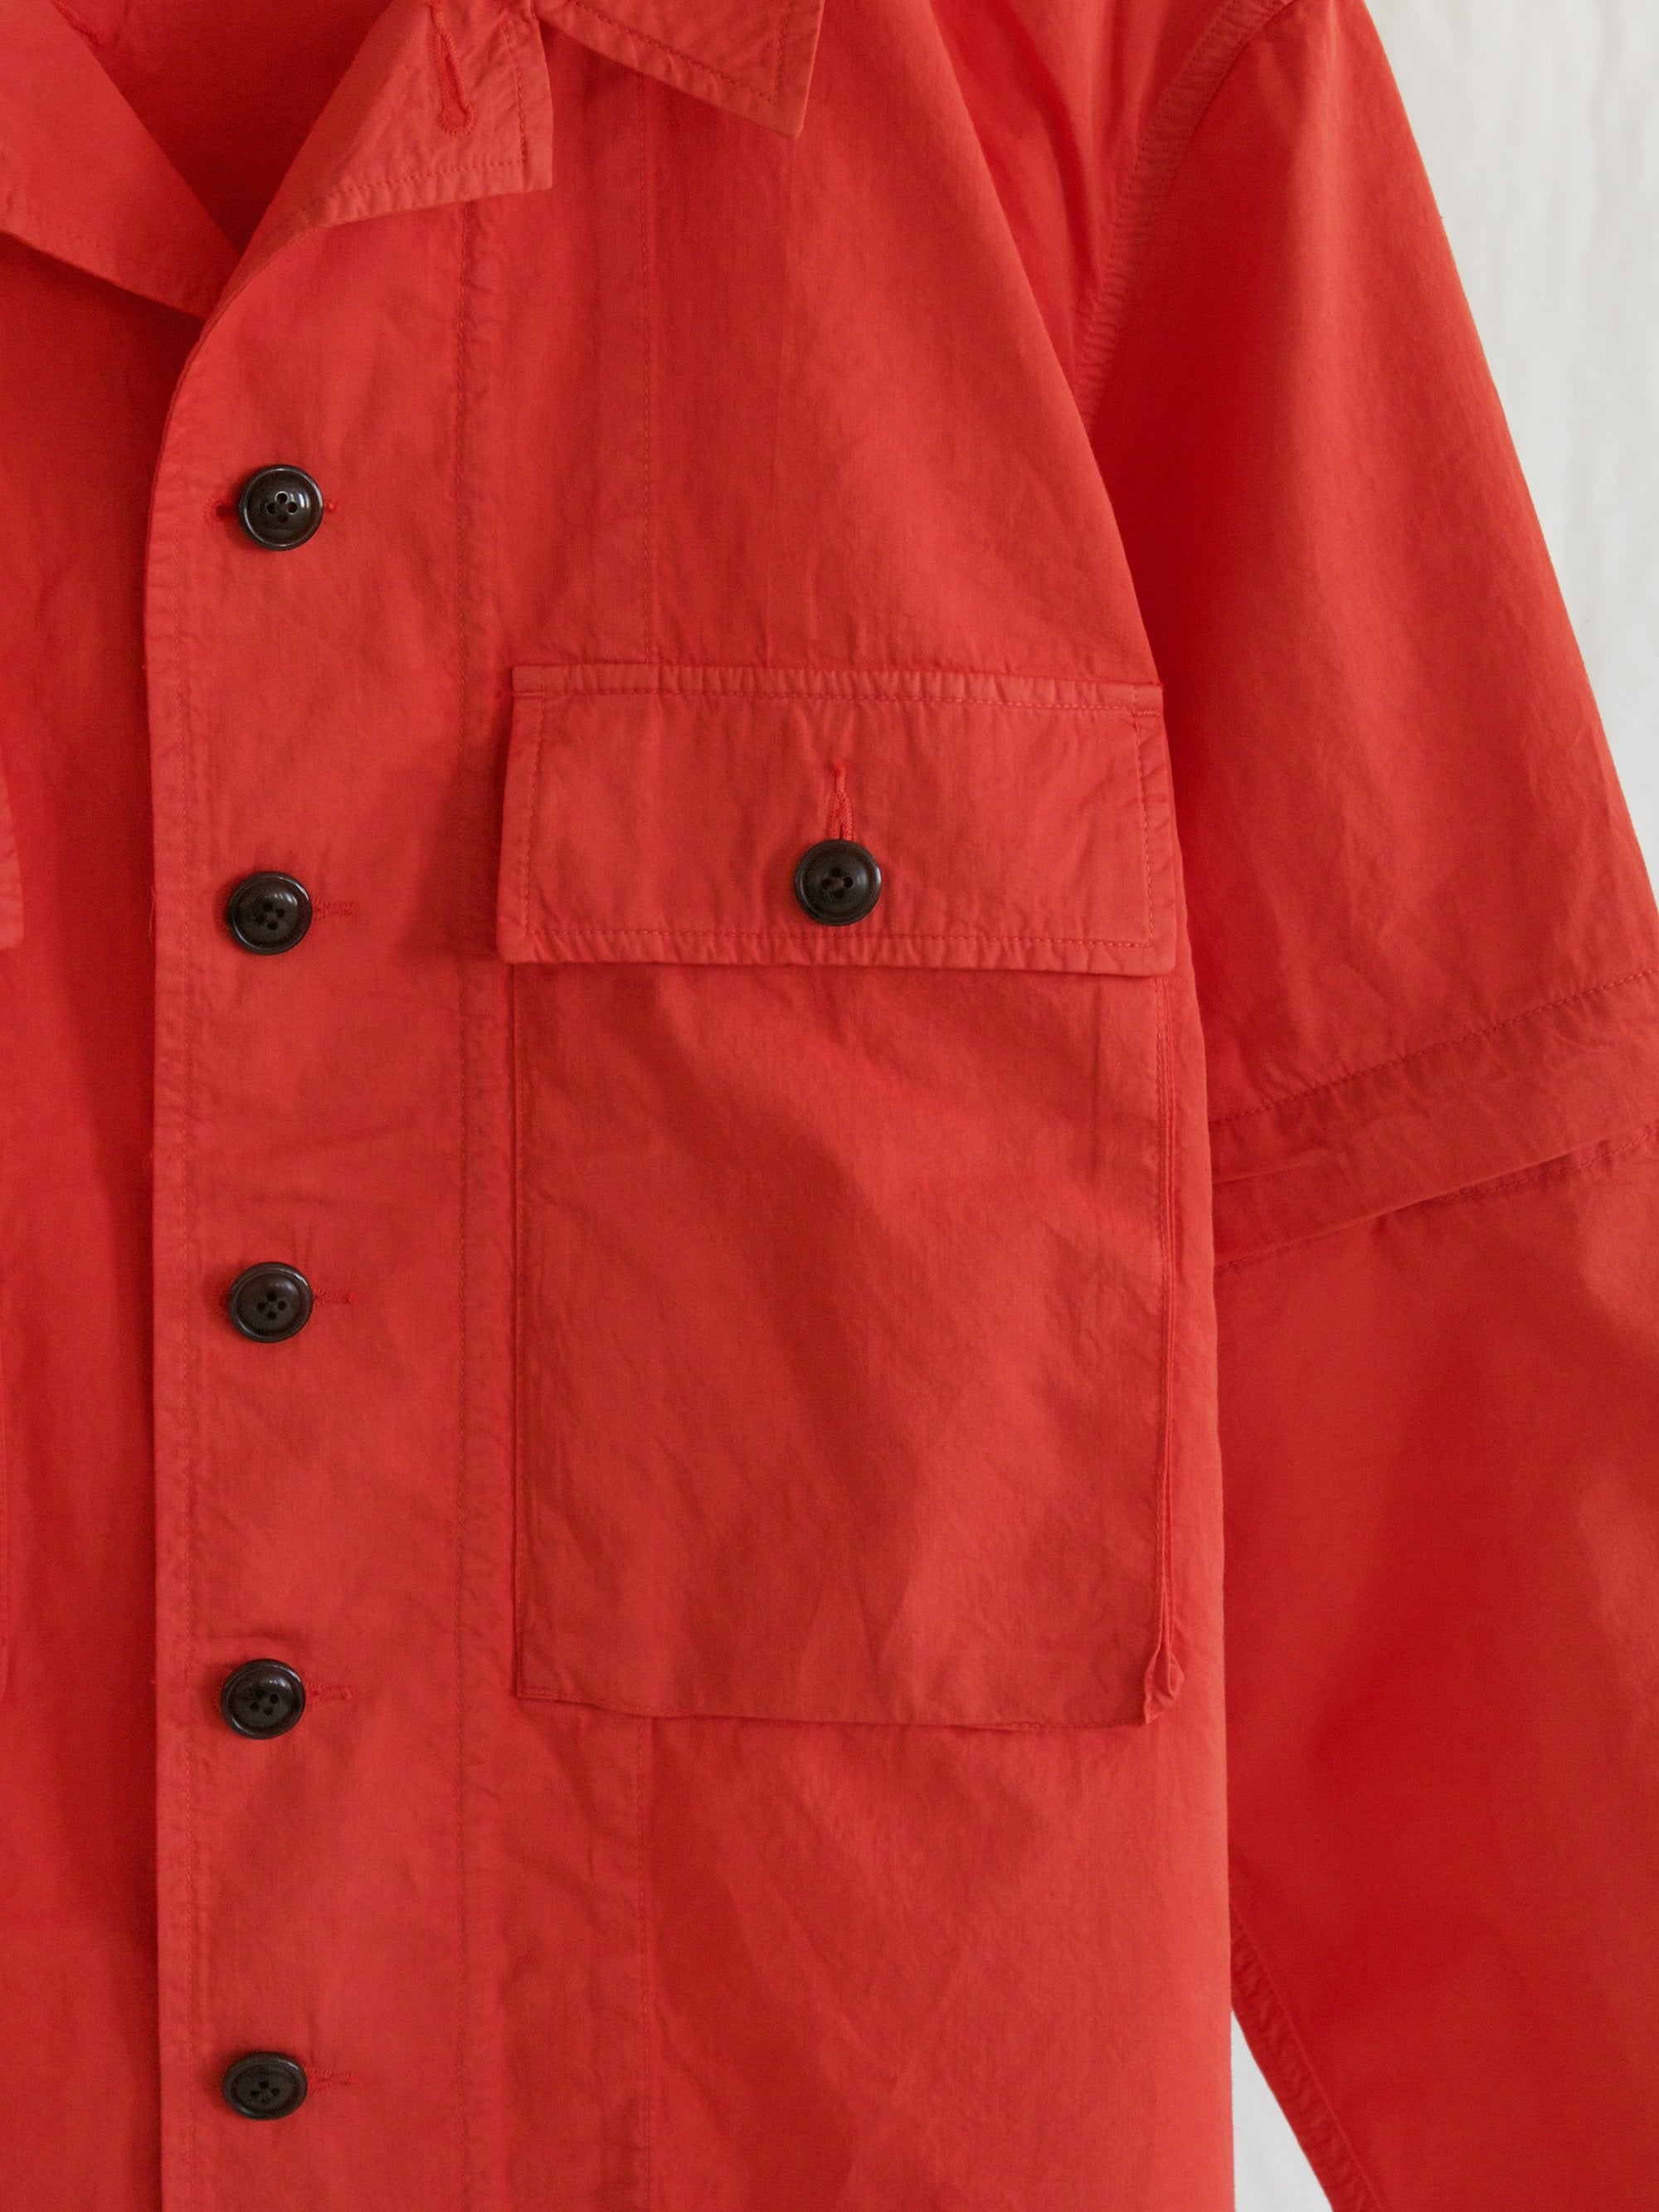 Namu Shop - Eastlogue KW M43 Jacket - Dyed Red